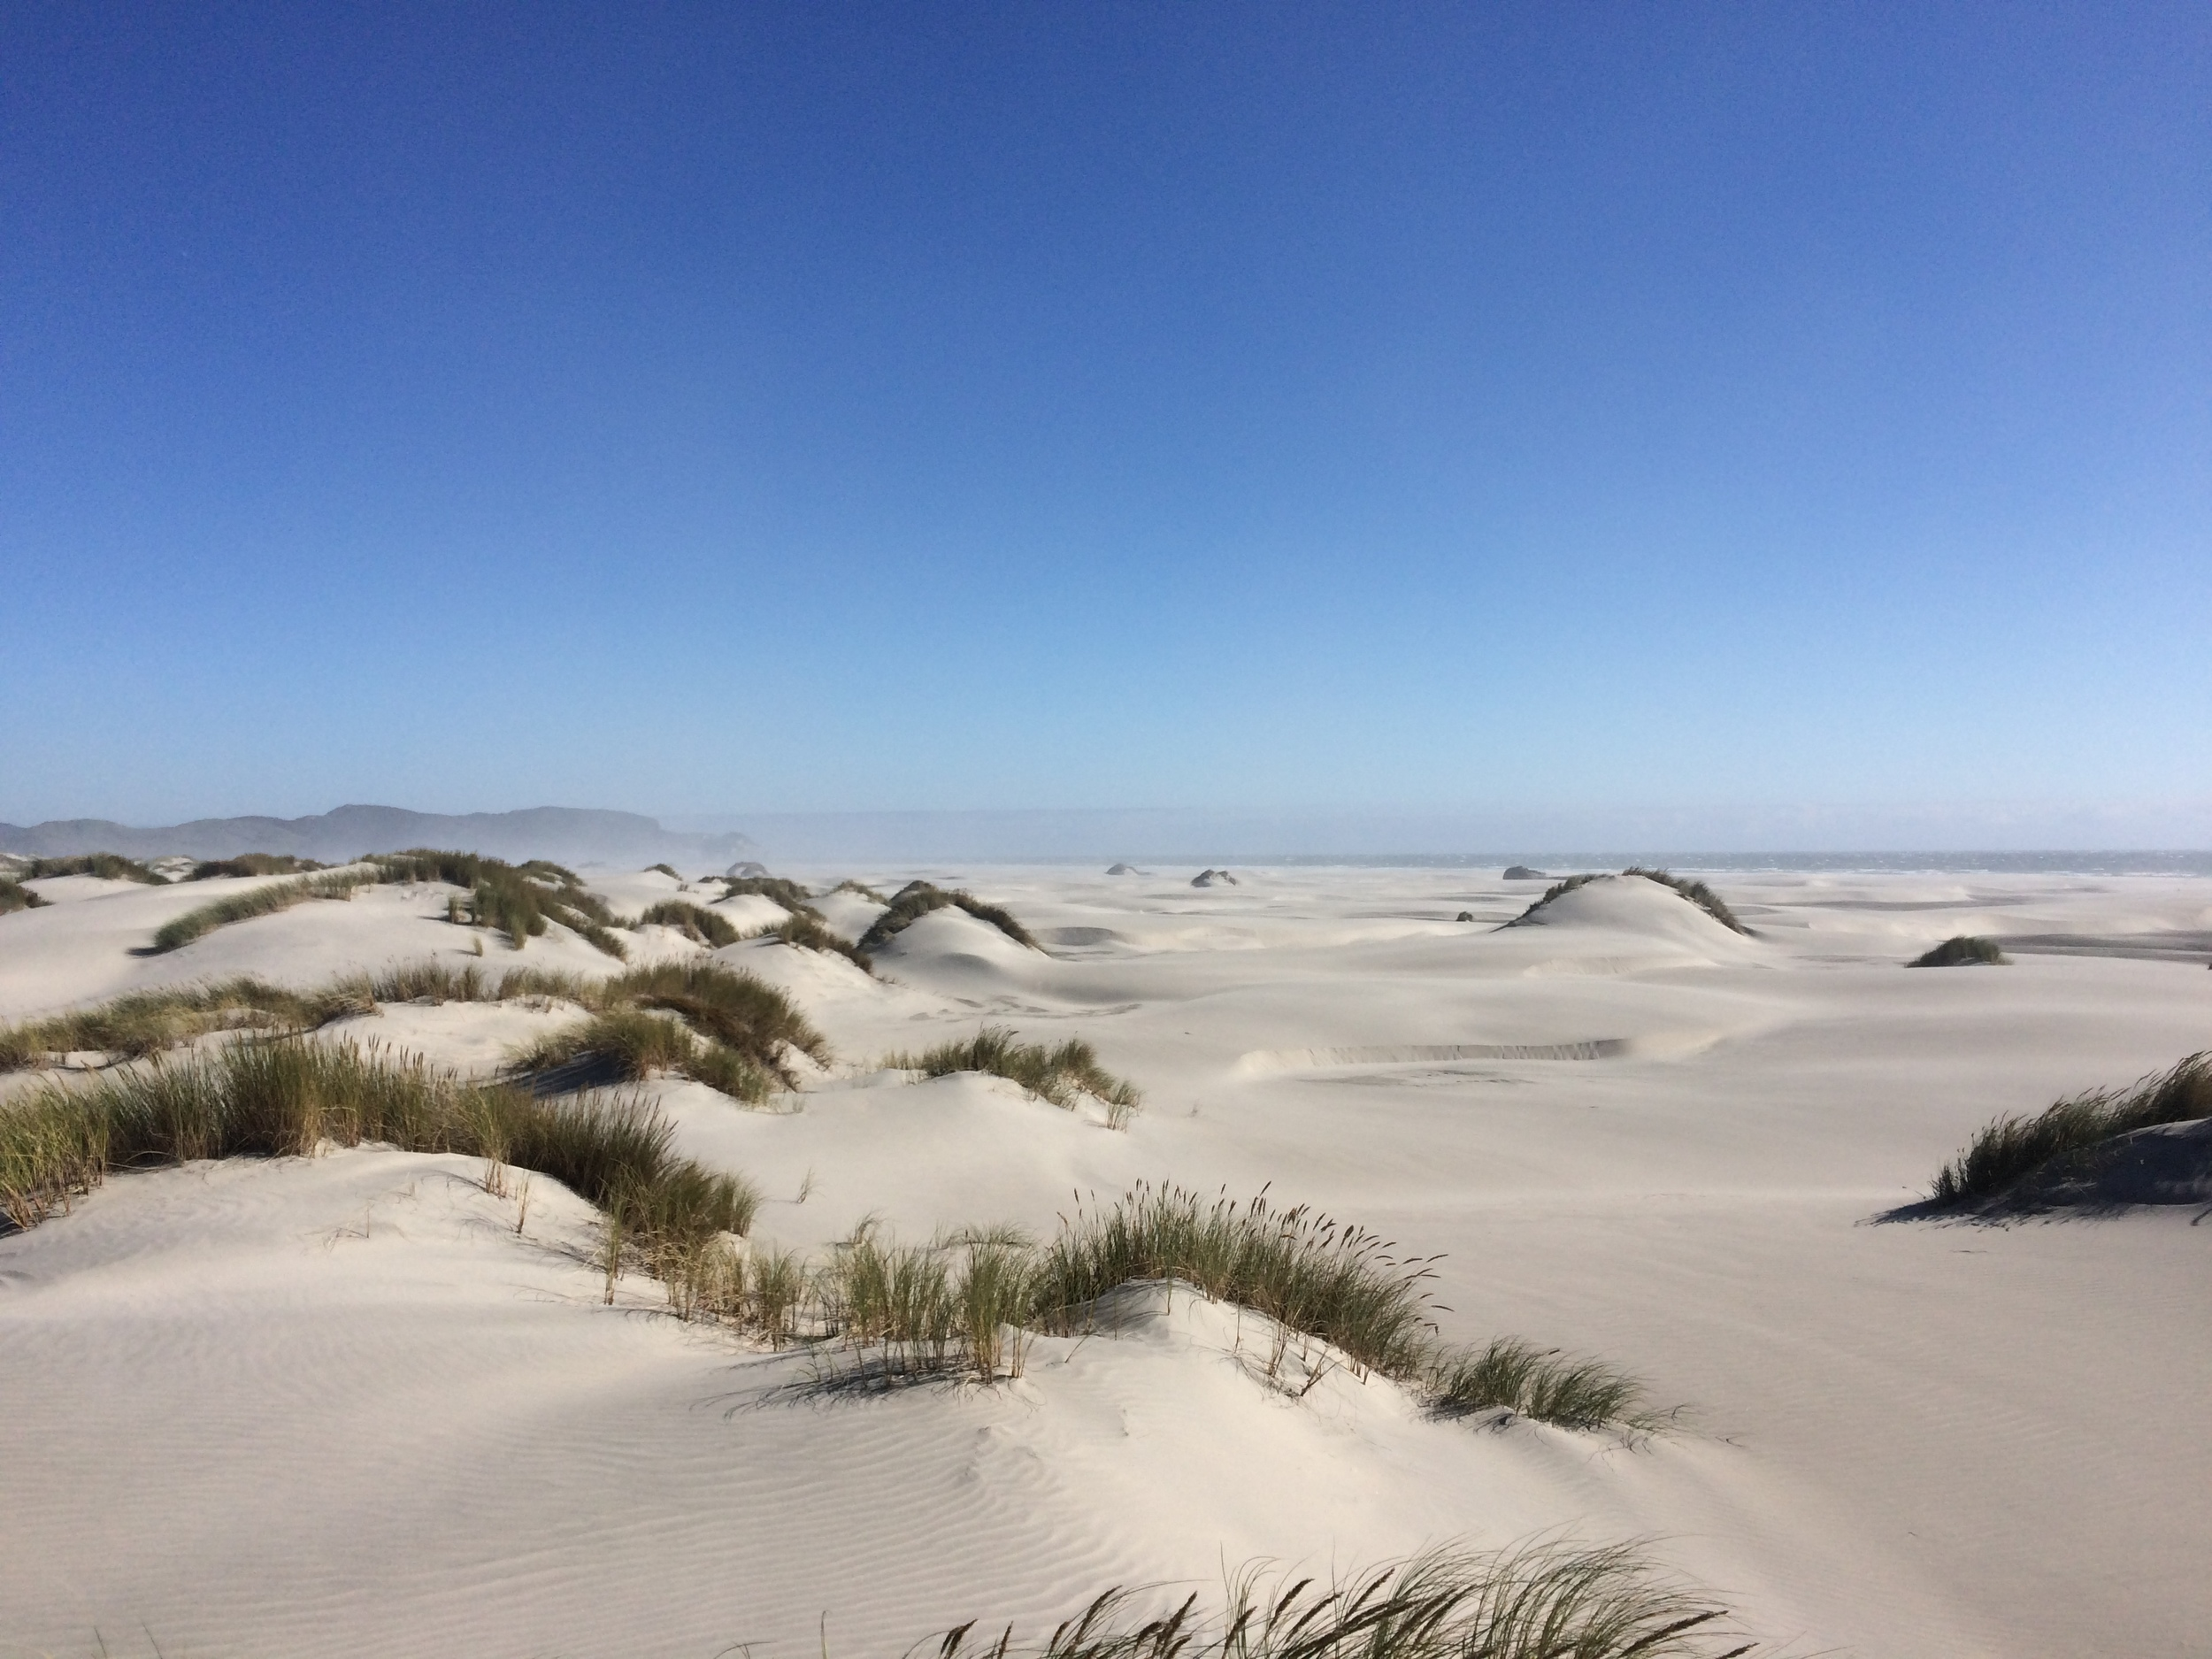 Sand dunes at Cape Farewell